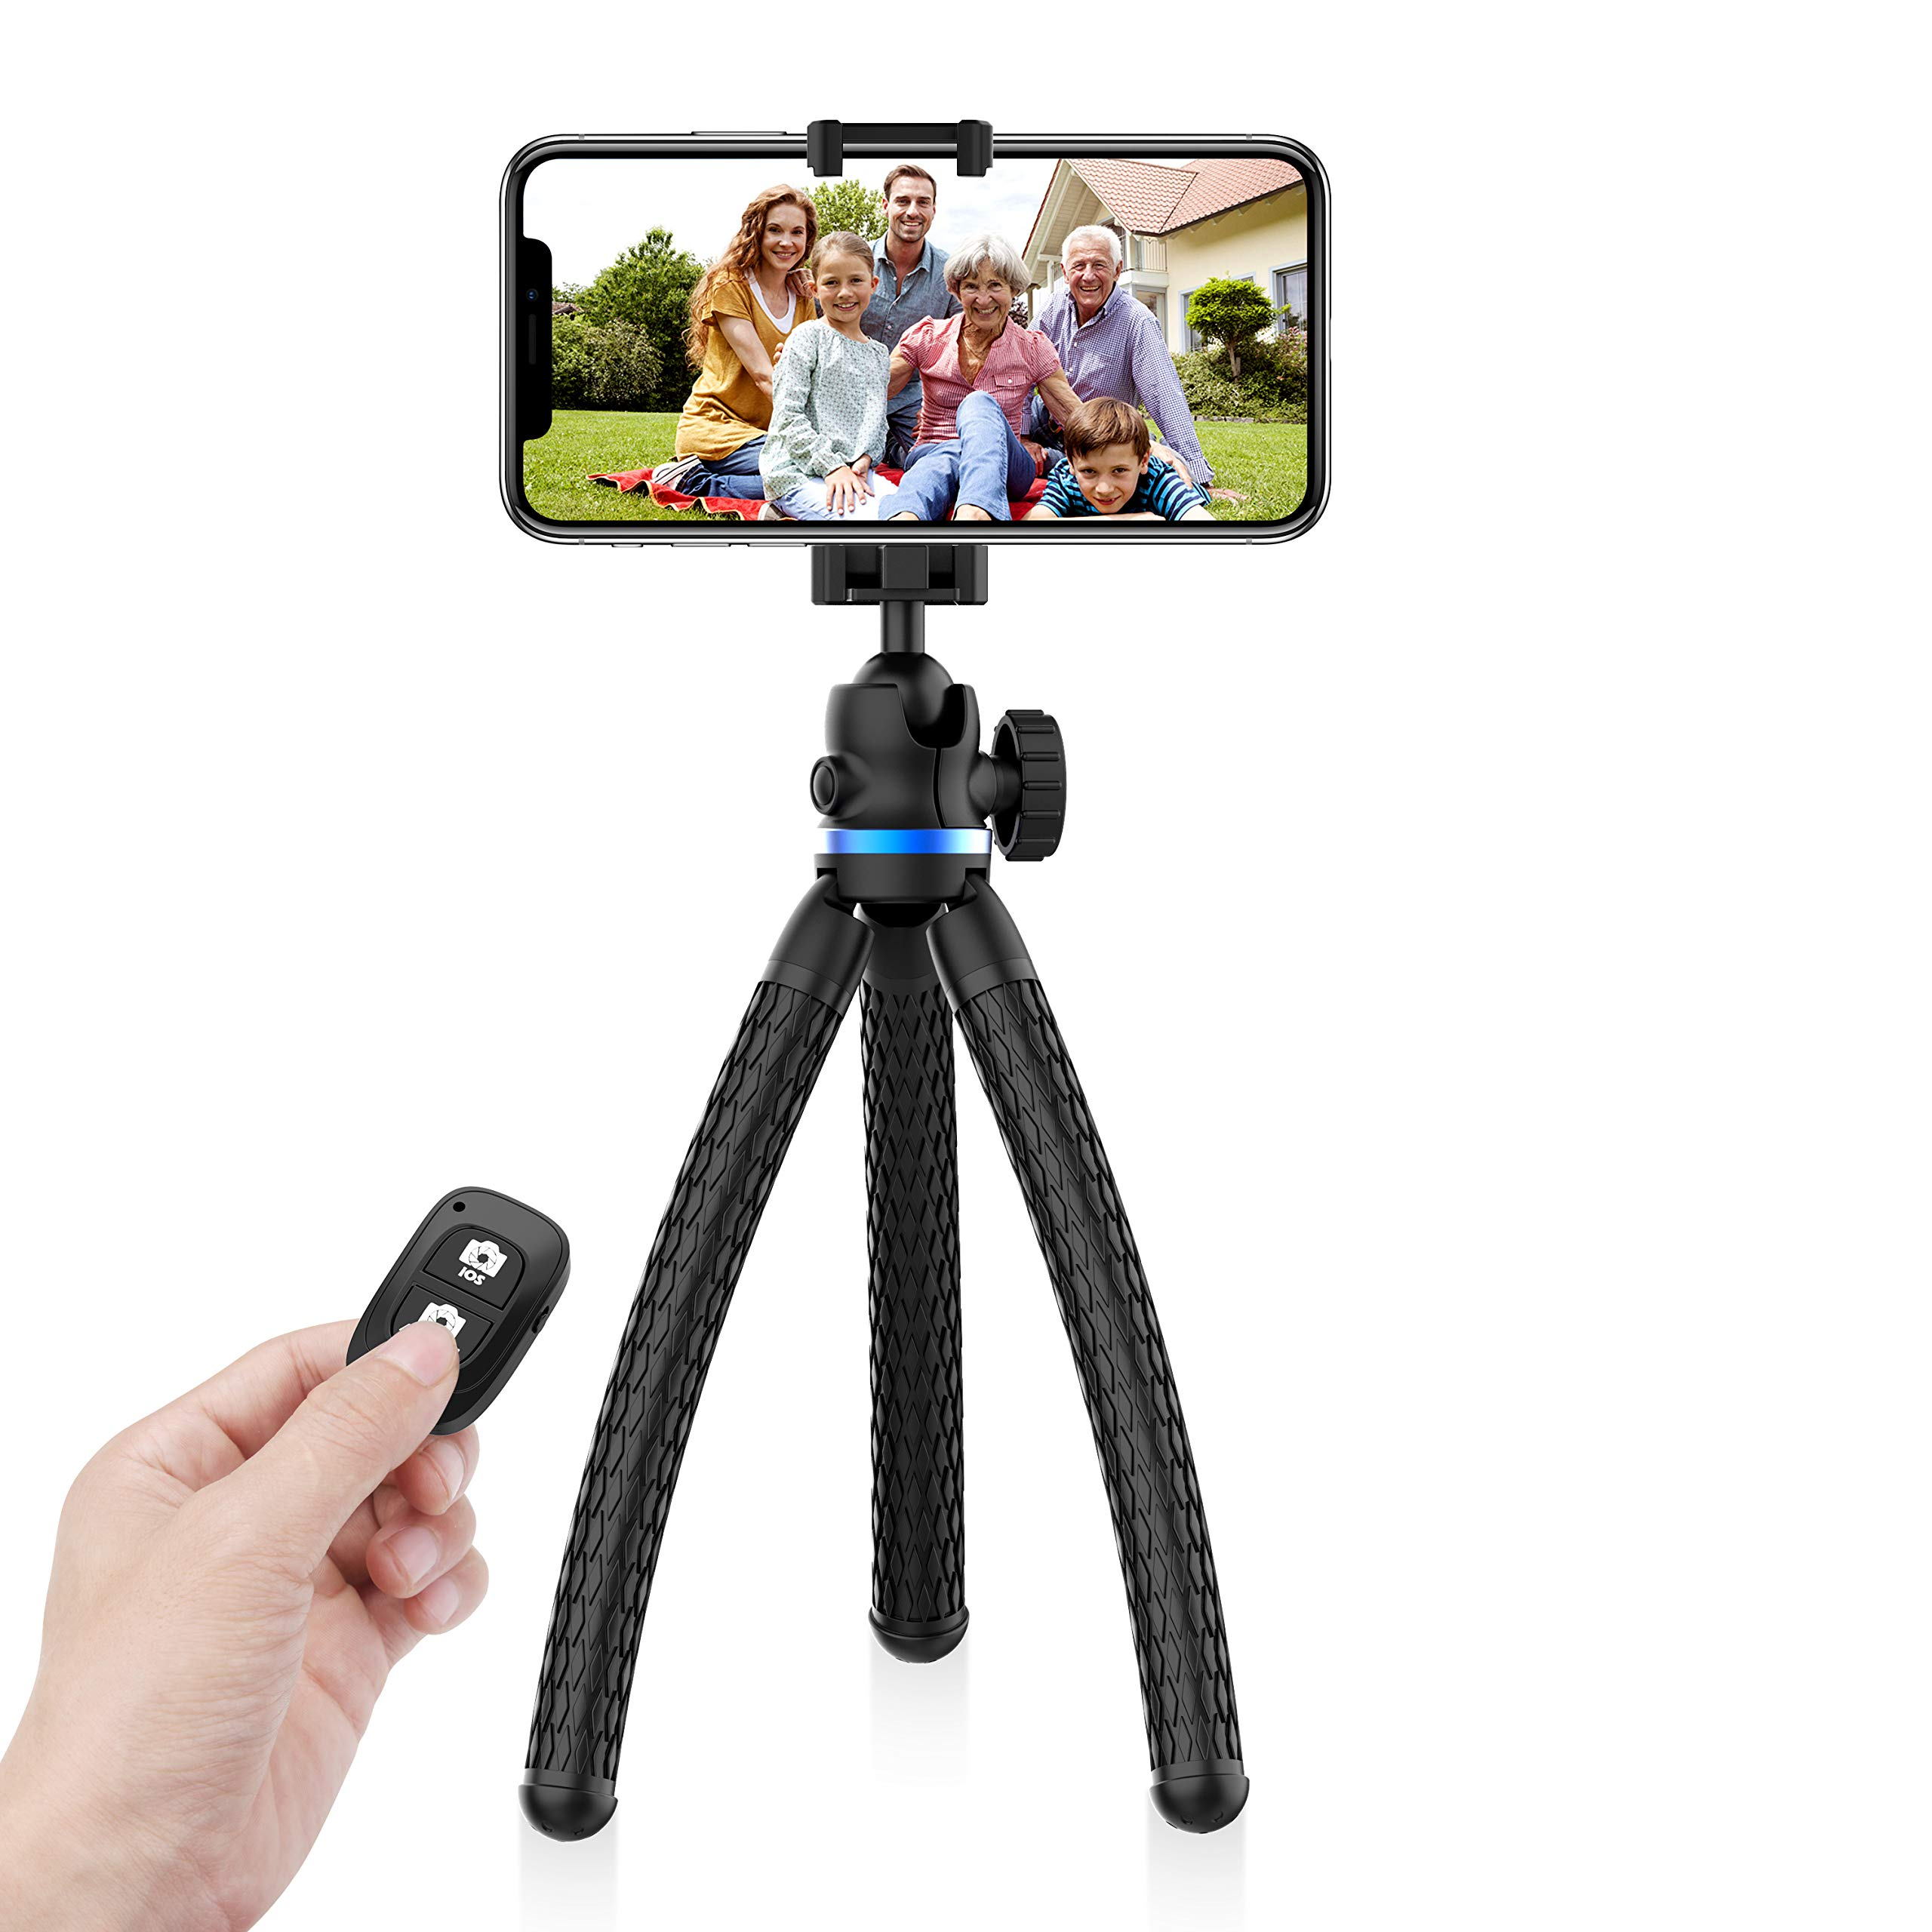 UBeesize Phone Tripod, 12 Inch Flexible Cell Phone Tripod Stand Holder with Wireless Remote Shutter & Universal Phone Mount, Compatible with iPhone/Android/DSLR/GoPro Camera by UBeesize